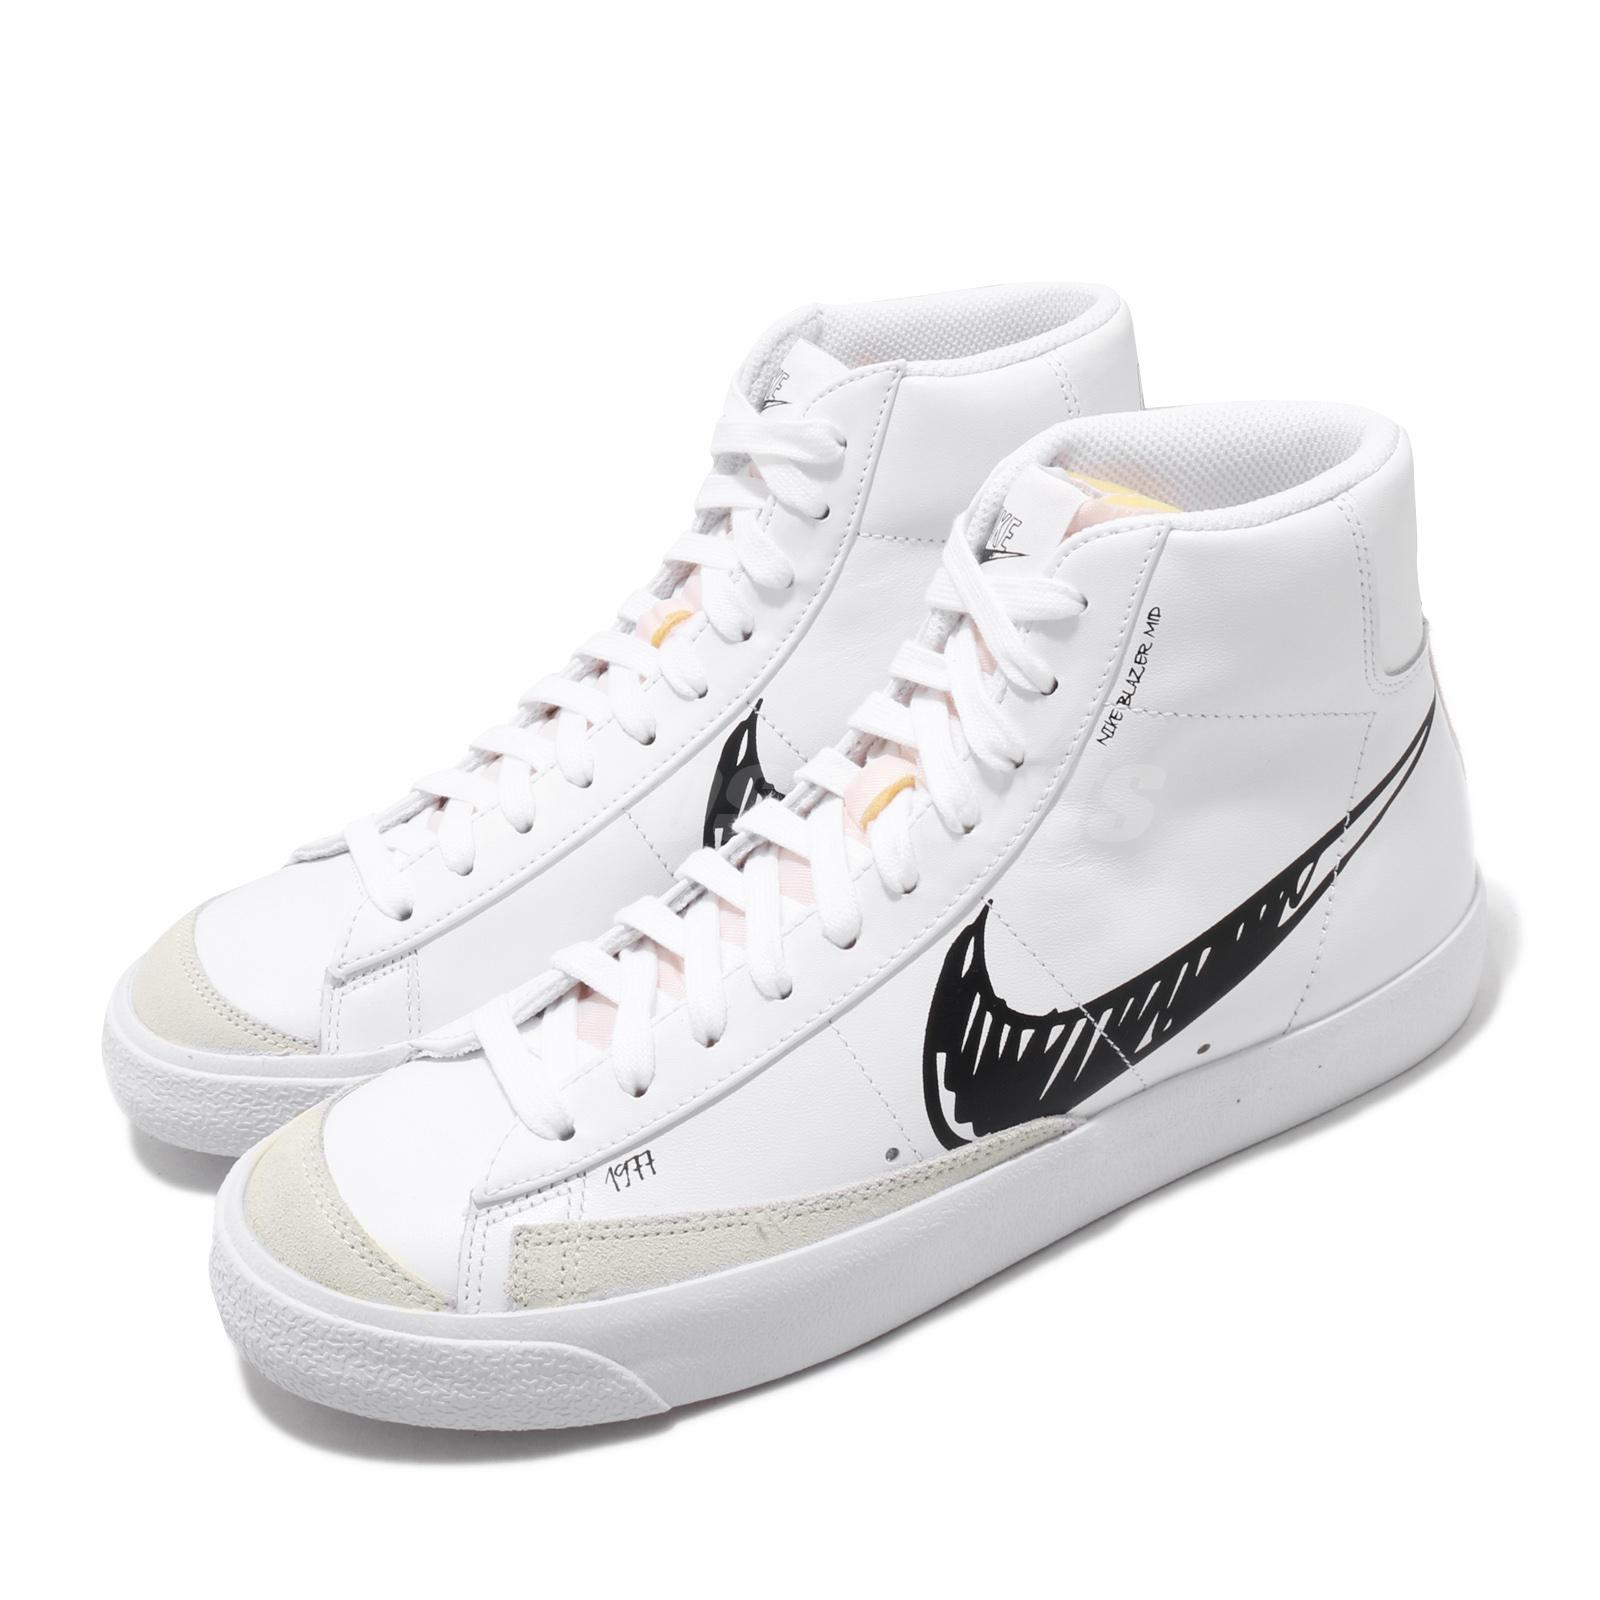 Details about Nike Blazer Mid VNTG 77 Sketch White Black Vintage Men Women  Shoes CW7580-101